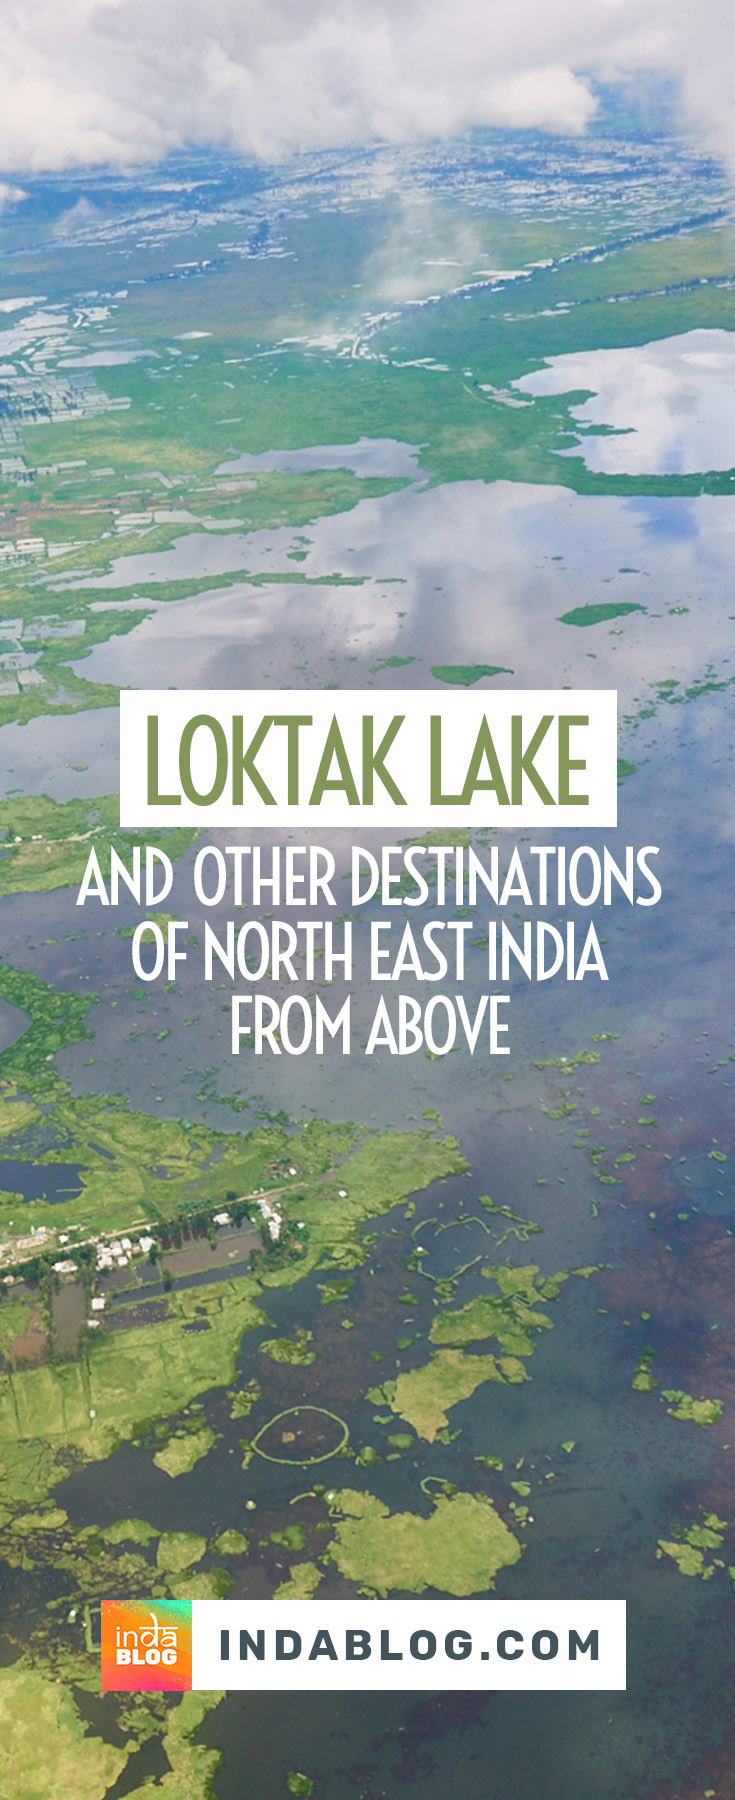 Visit gallery with beautiful aerial photographs shot over North East India. On picture: Loktak Lake, Manipur.